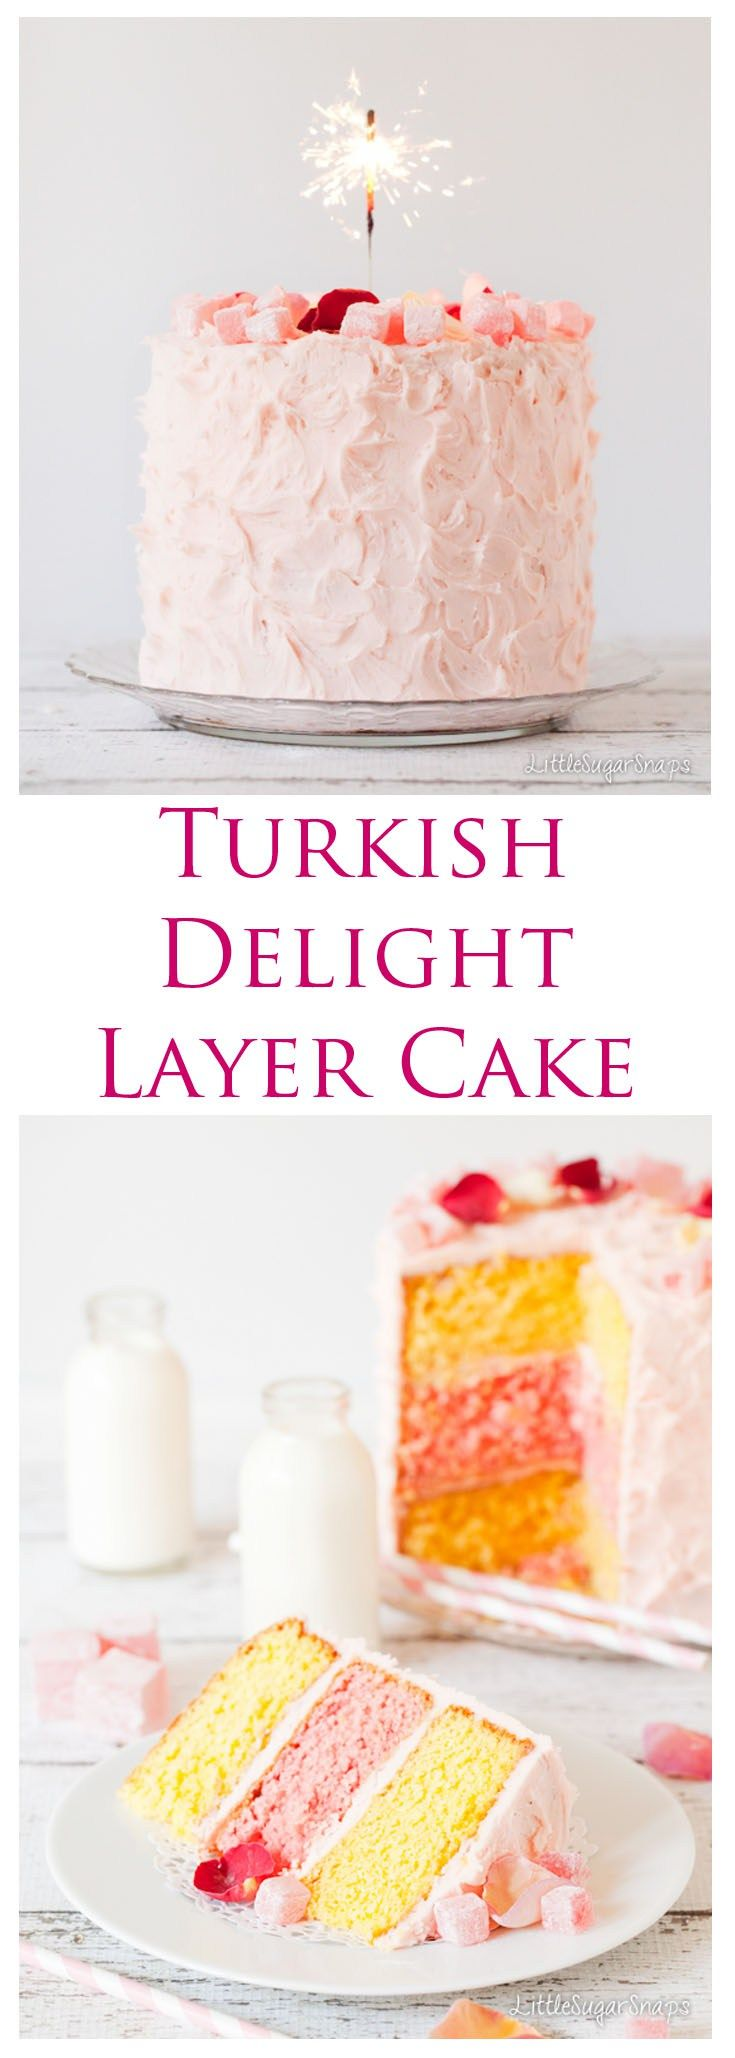 Turkish Delight Layer Cake:layers of rose and lemon sponge cake topped with a subtle rose icing, chunks of Turkish Delight & edible rose petals. It's enough to satisfy the sweet tooth of a child but not so sweet it would offend more mature taste-buds.